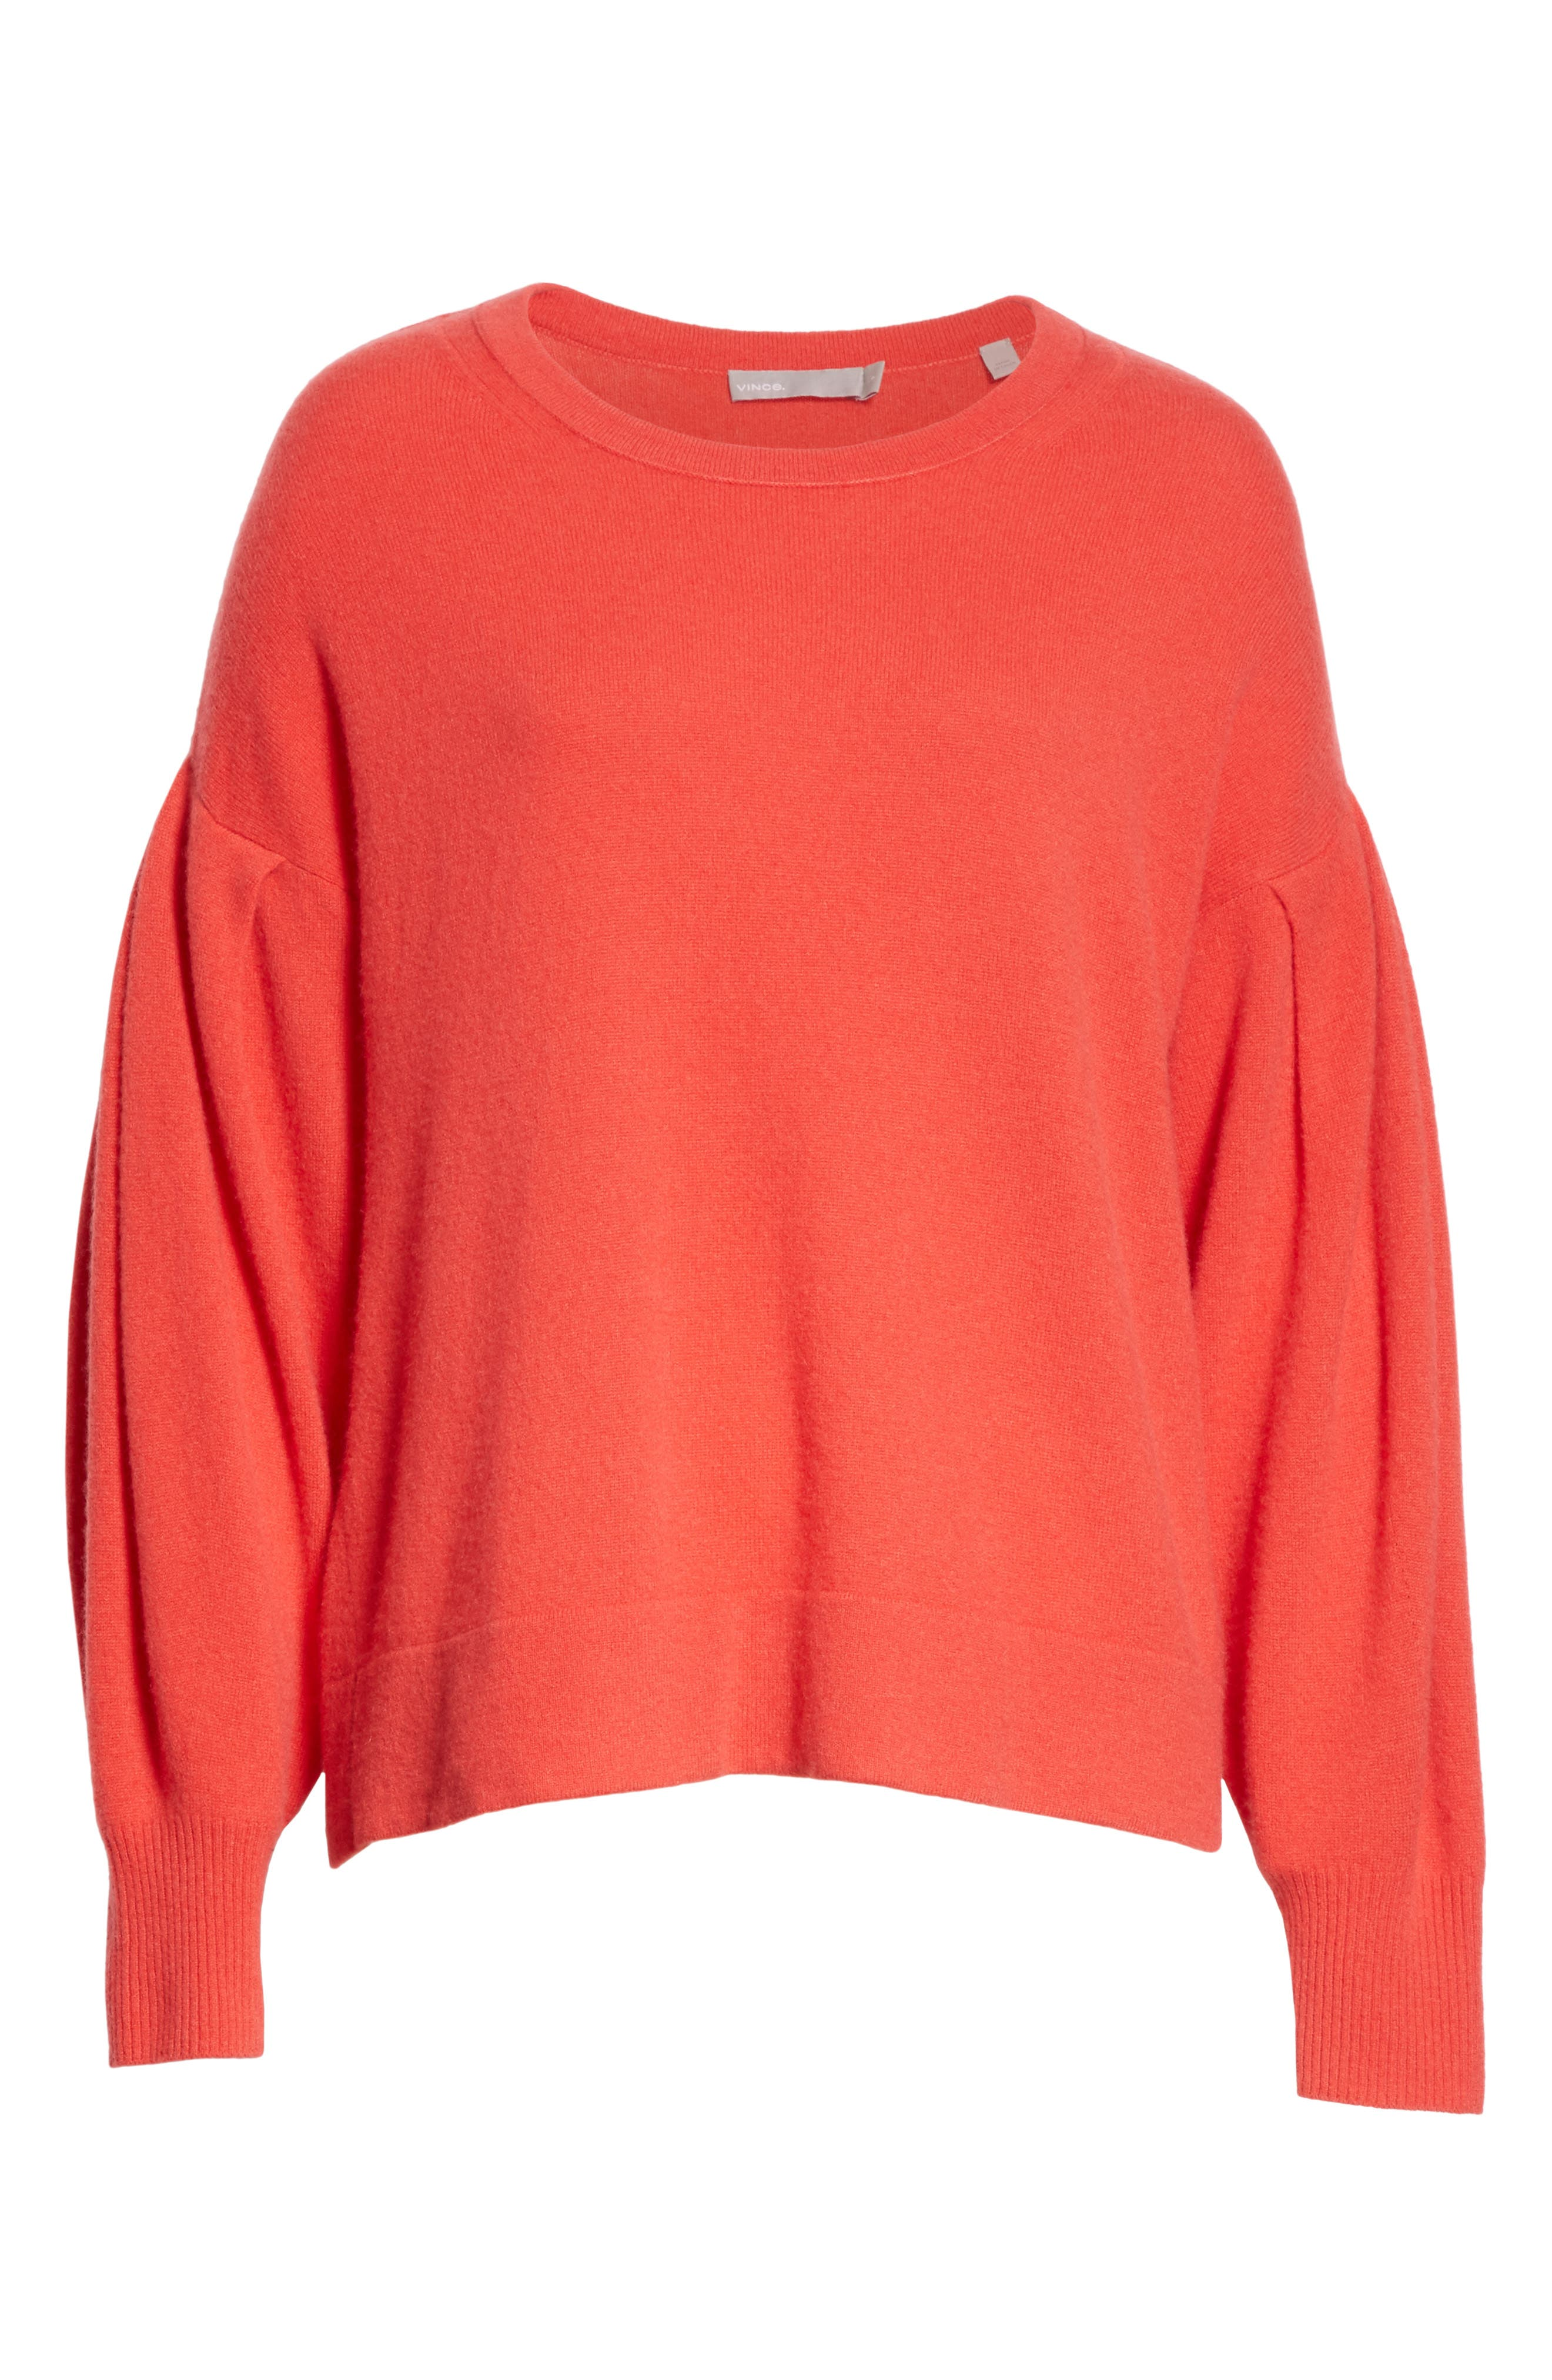 Pleat Sleeve Cashmere Sweater,                             Alternate thumbnail 8, color,                             Poppy